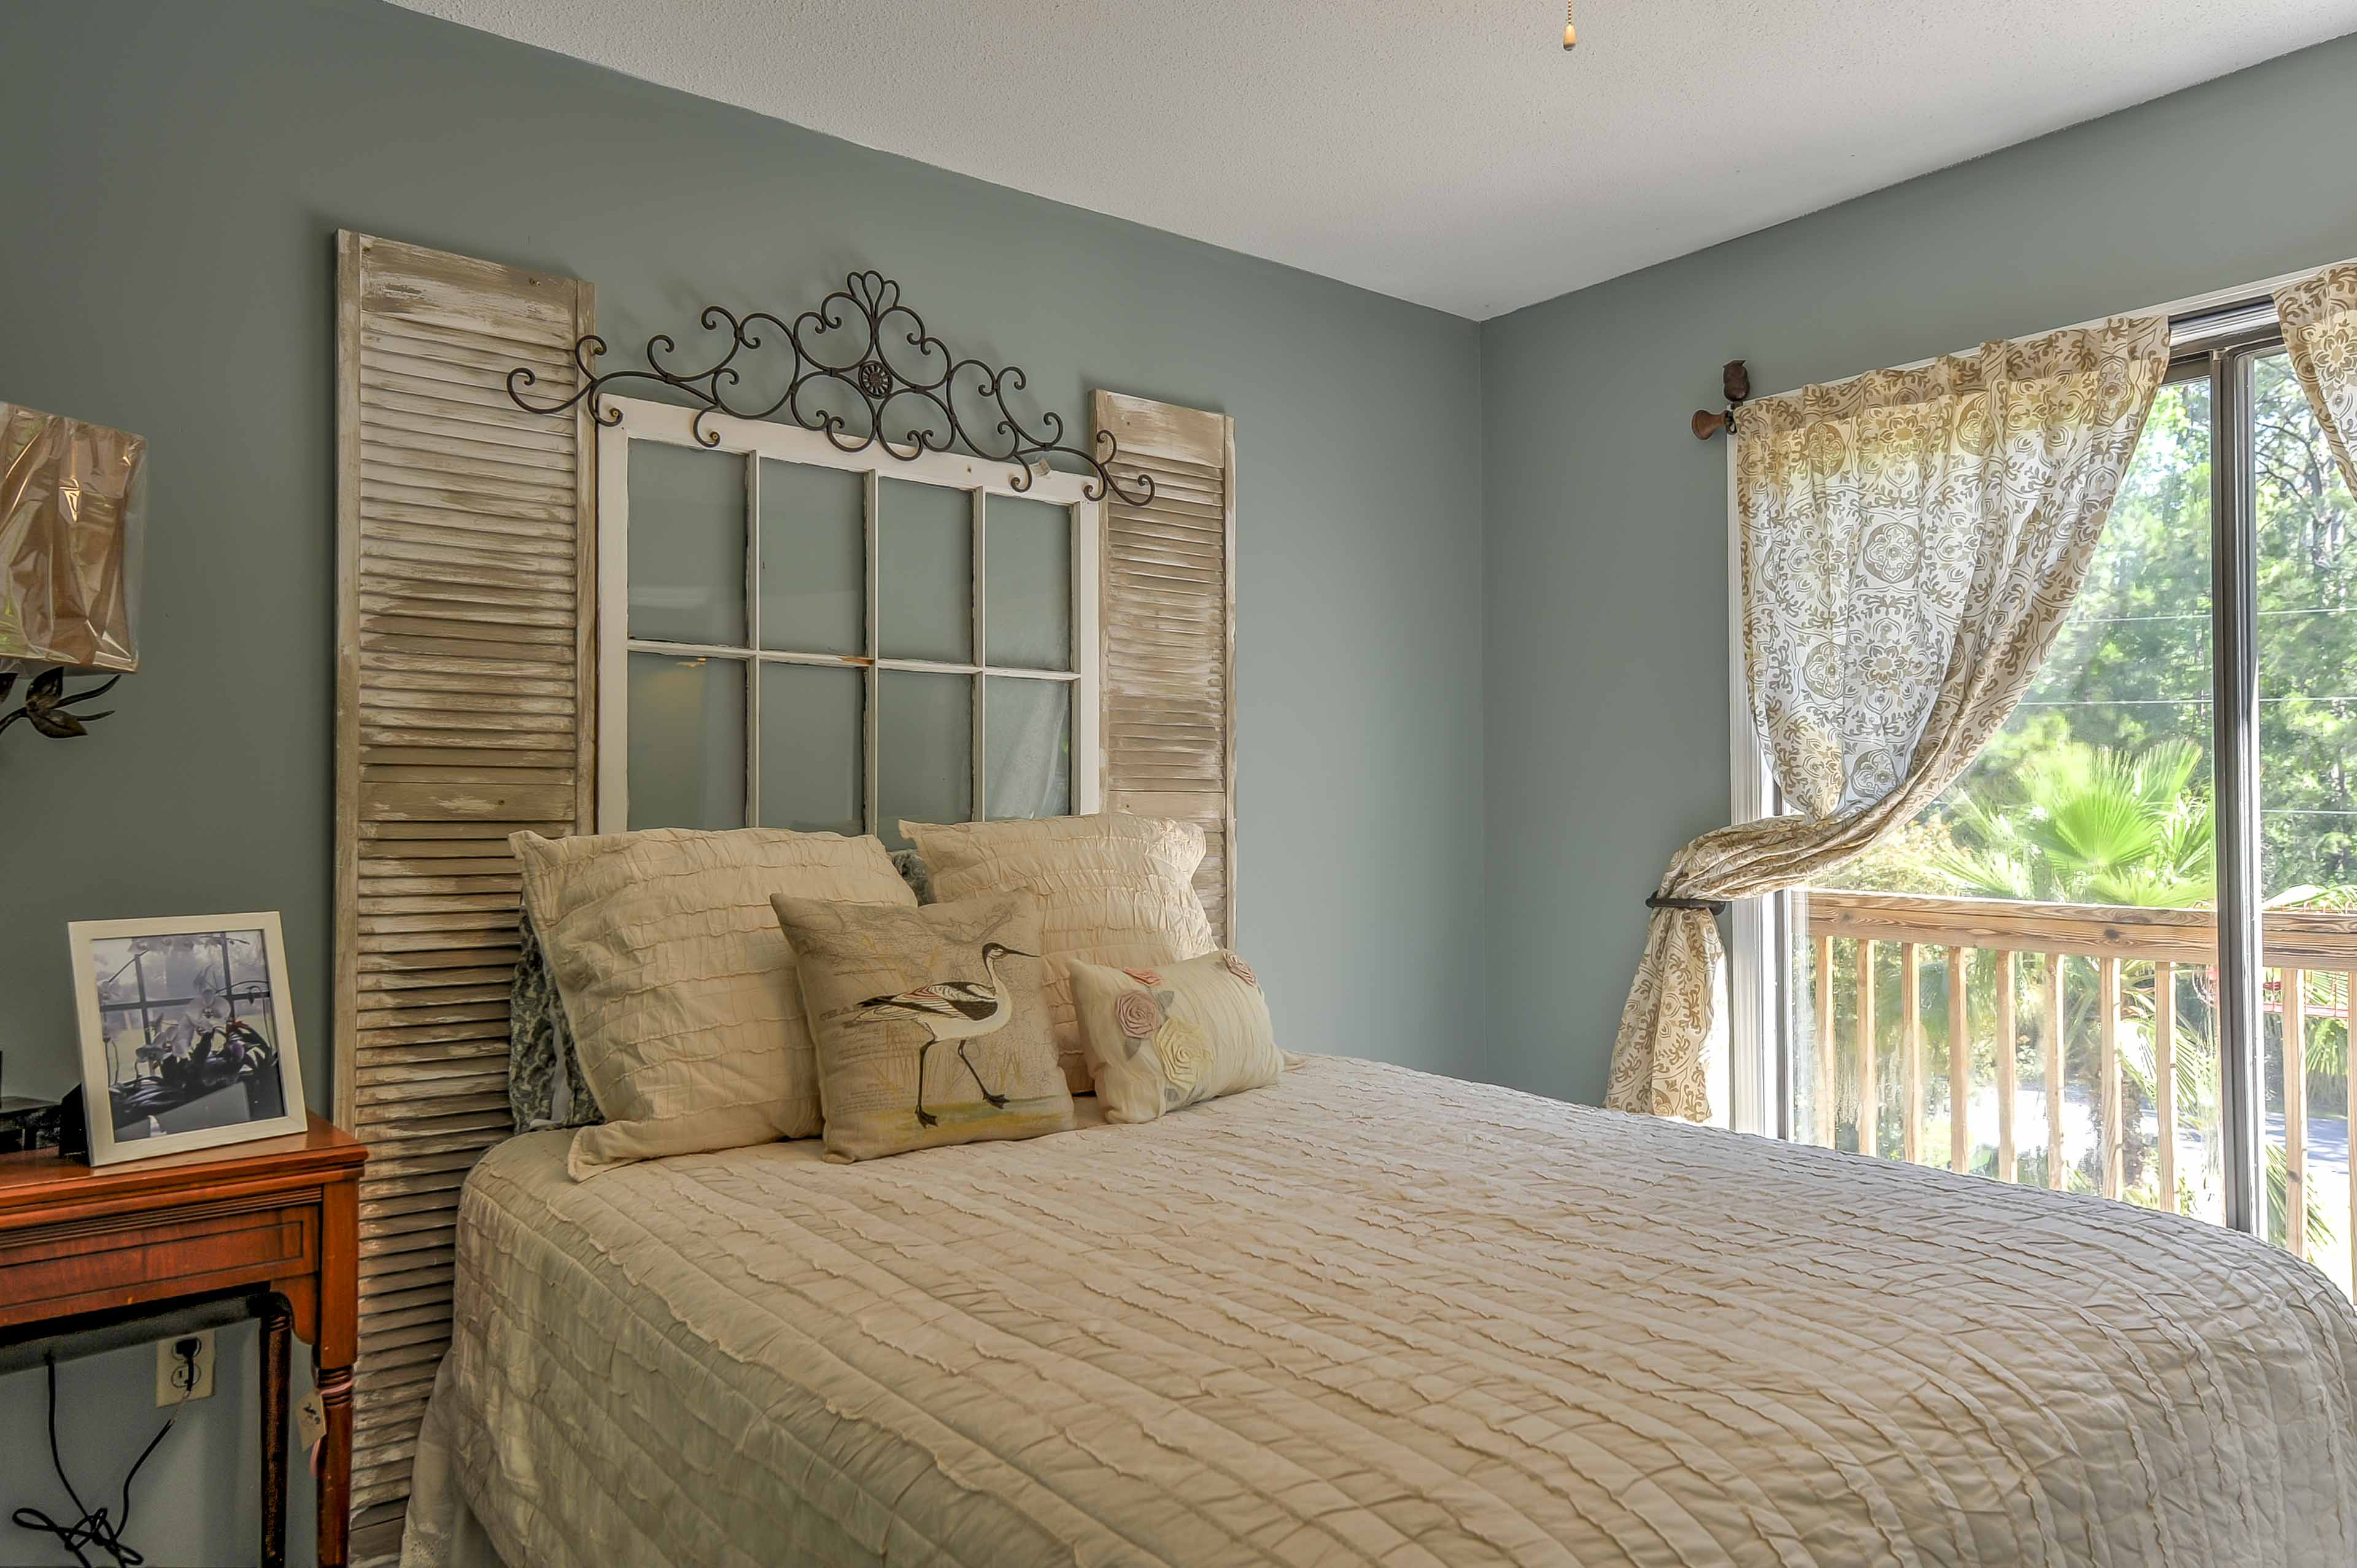 The second bedroom features a cozy bed for peaceful slumbers.